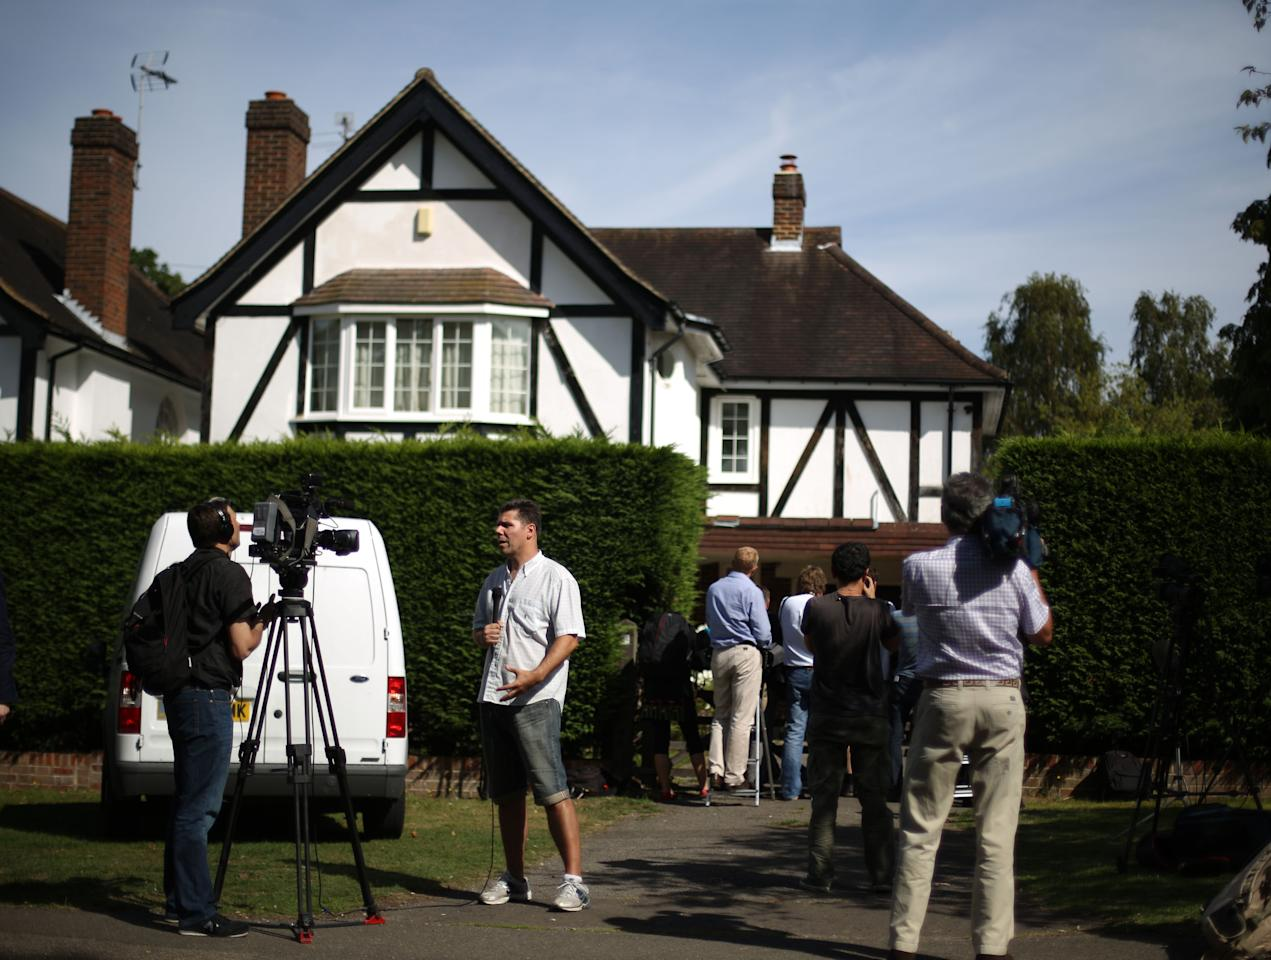 CLAYGATE, ENGLAND - SEPTEMBER 06:  Journalists gather at a house believed to be owned by a British family murdered in a shooting in the French Alps France on September 6, 2012 in Claygate, England. French police are investigating a multiple murder after the bodies of three members of a British family were found in a bullet-riddled car in the French resort of Annecy. A 4-year-old girl, who had remained hidden for hours, was also found alive after investigators eventually entered the car. Local news agencies have named the male victim as Saad al-Hilli.  (Photo by Peter Macdiarmid/Getty Images)